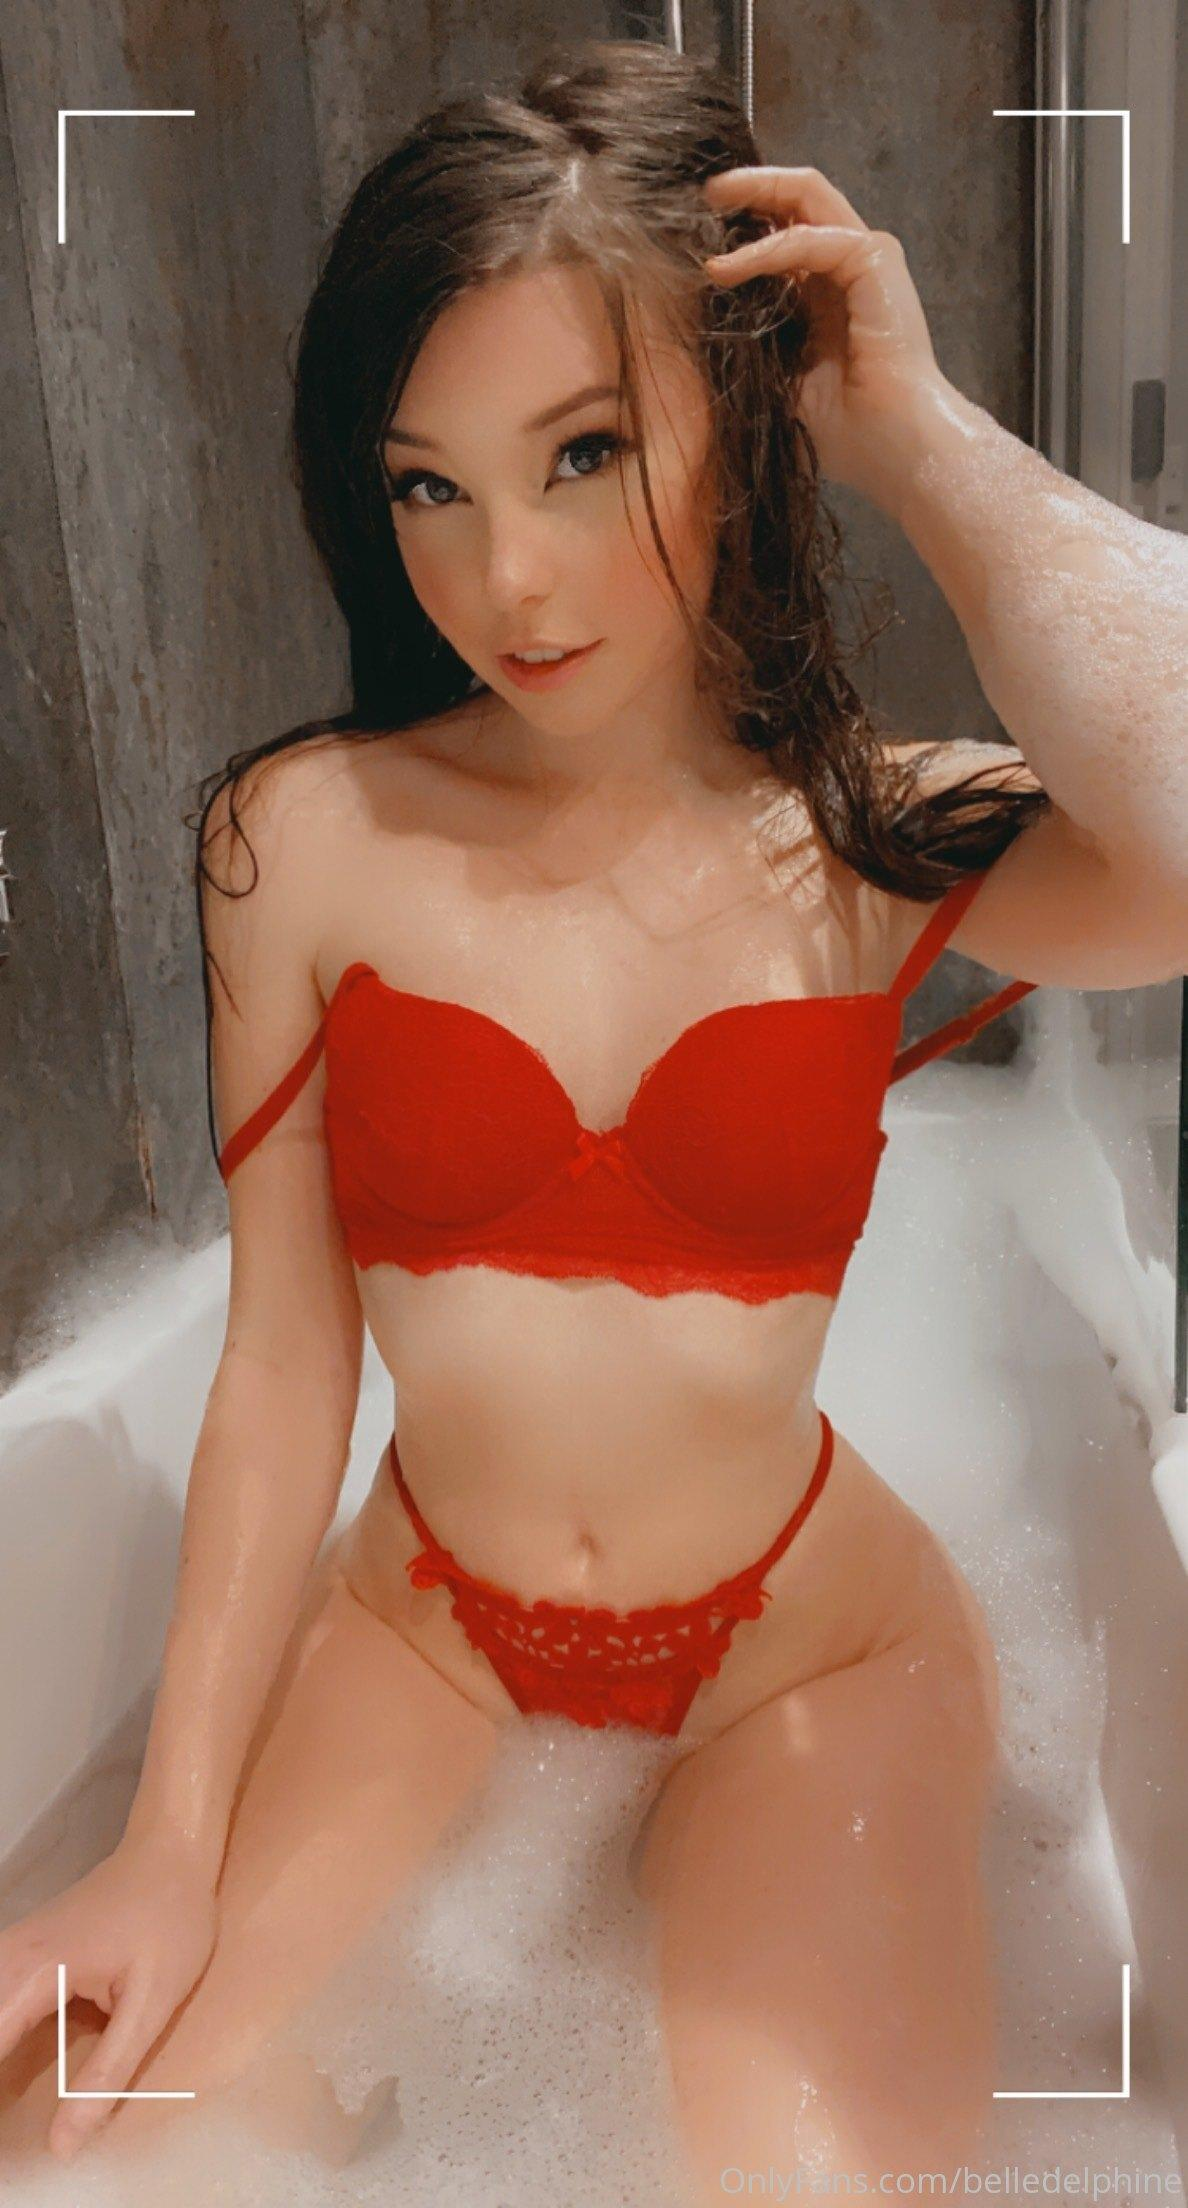 Belle Delphine Nude In Bath With Shoes Onlyfans Set Leaked 0026